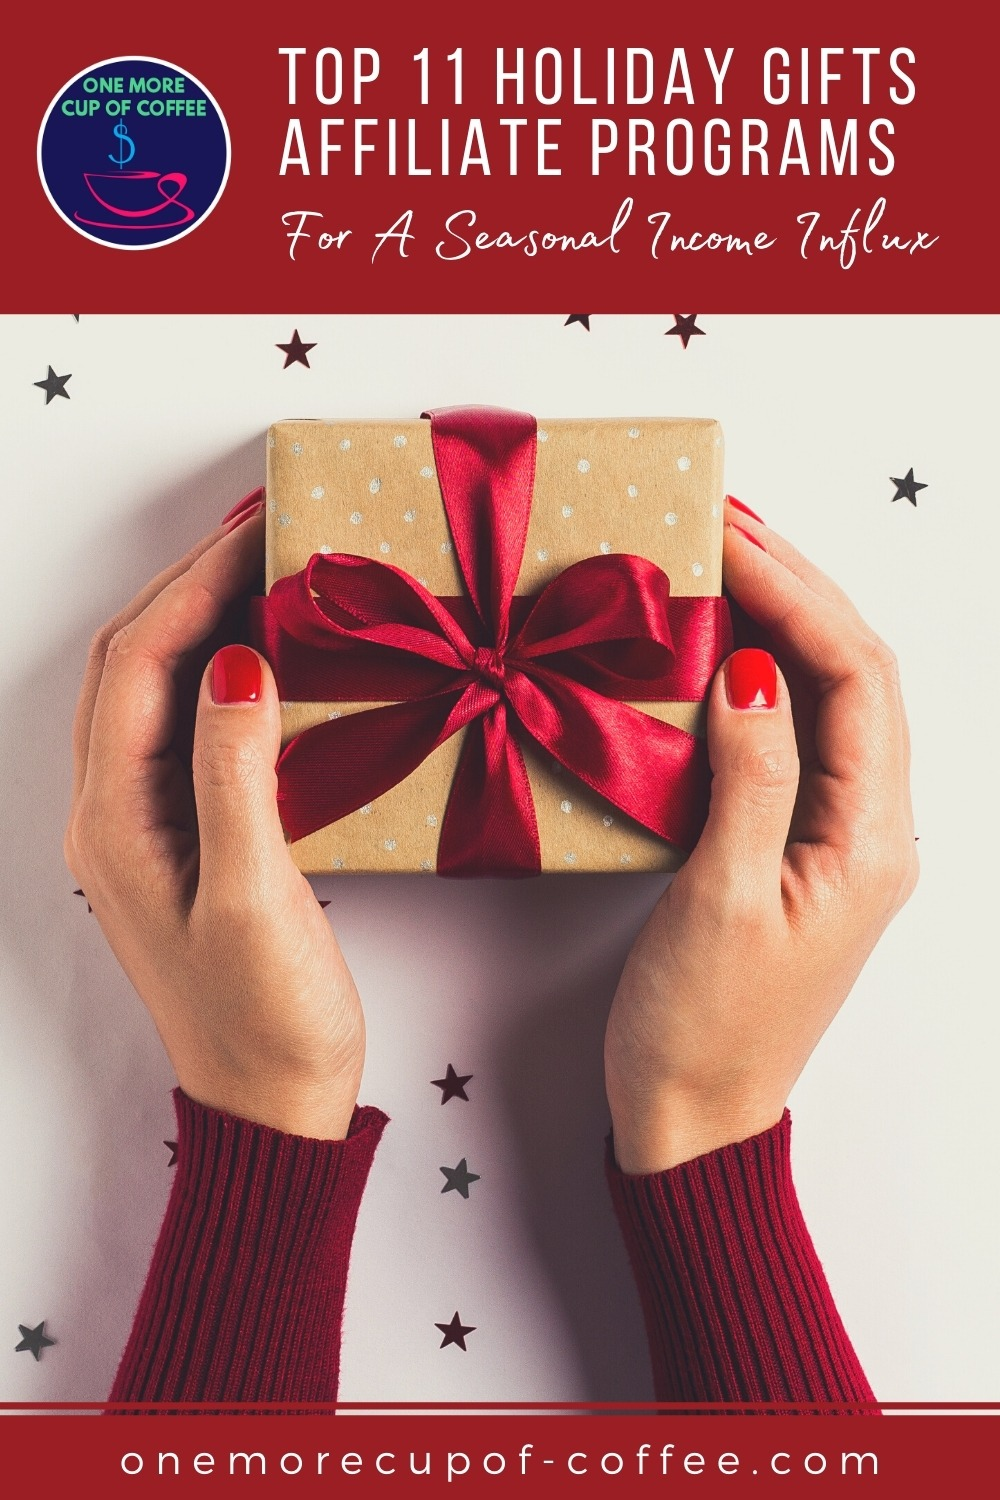 """top view image of hands in long sleeves sweater holding a little box of gift wrapped in brown paper with red satin bow; with text overlay at the top in red banner """"Top 11 Holiday Gifts Affiliate Programs For A Seasonal Income Influx"""""""